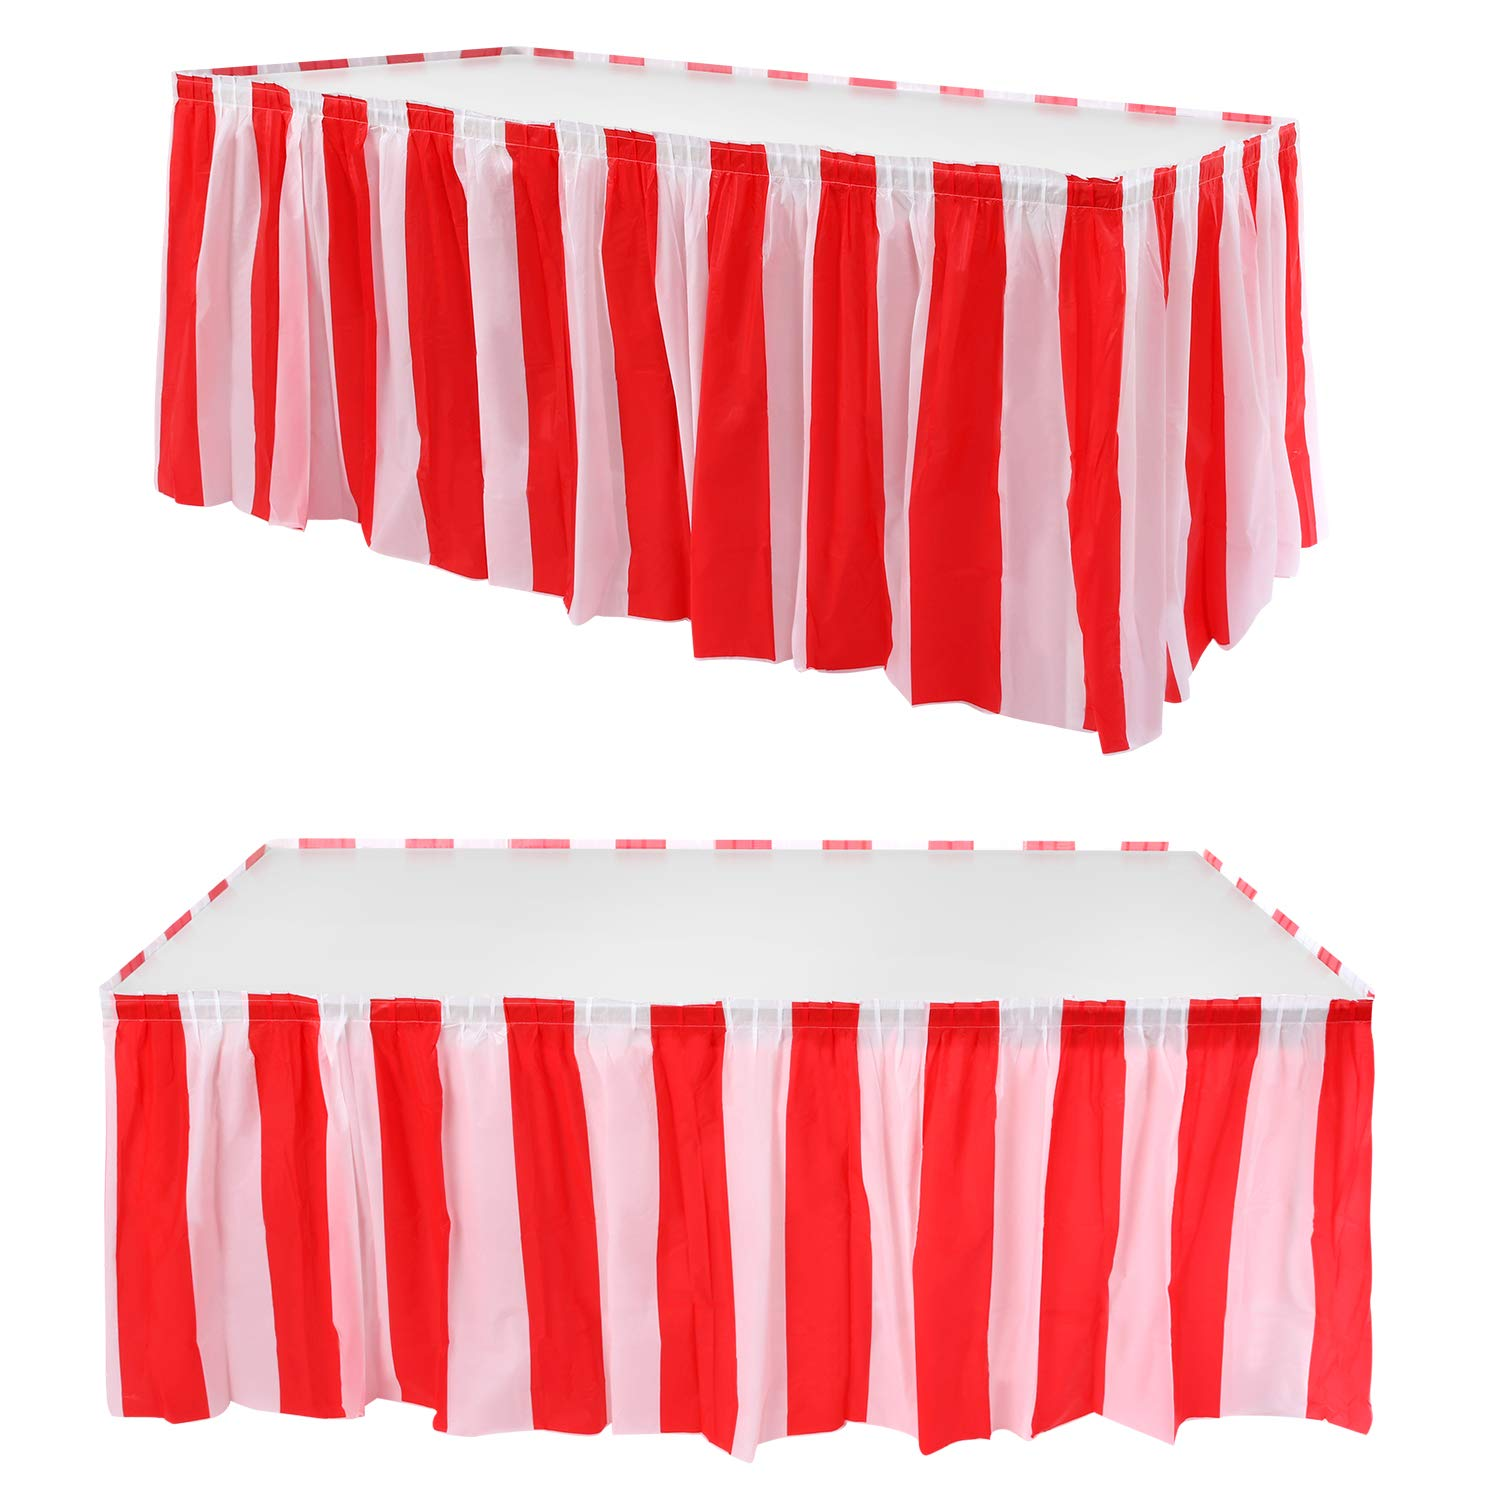 2 Pieces Red White Striped Table Skirt Circus Theme Table Skirt for Carnival Home Decoration Party Supplies